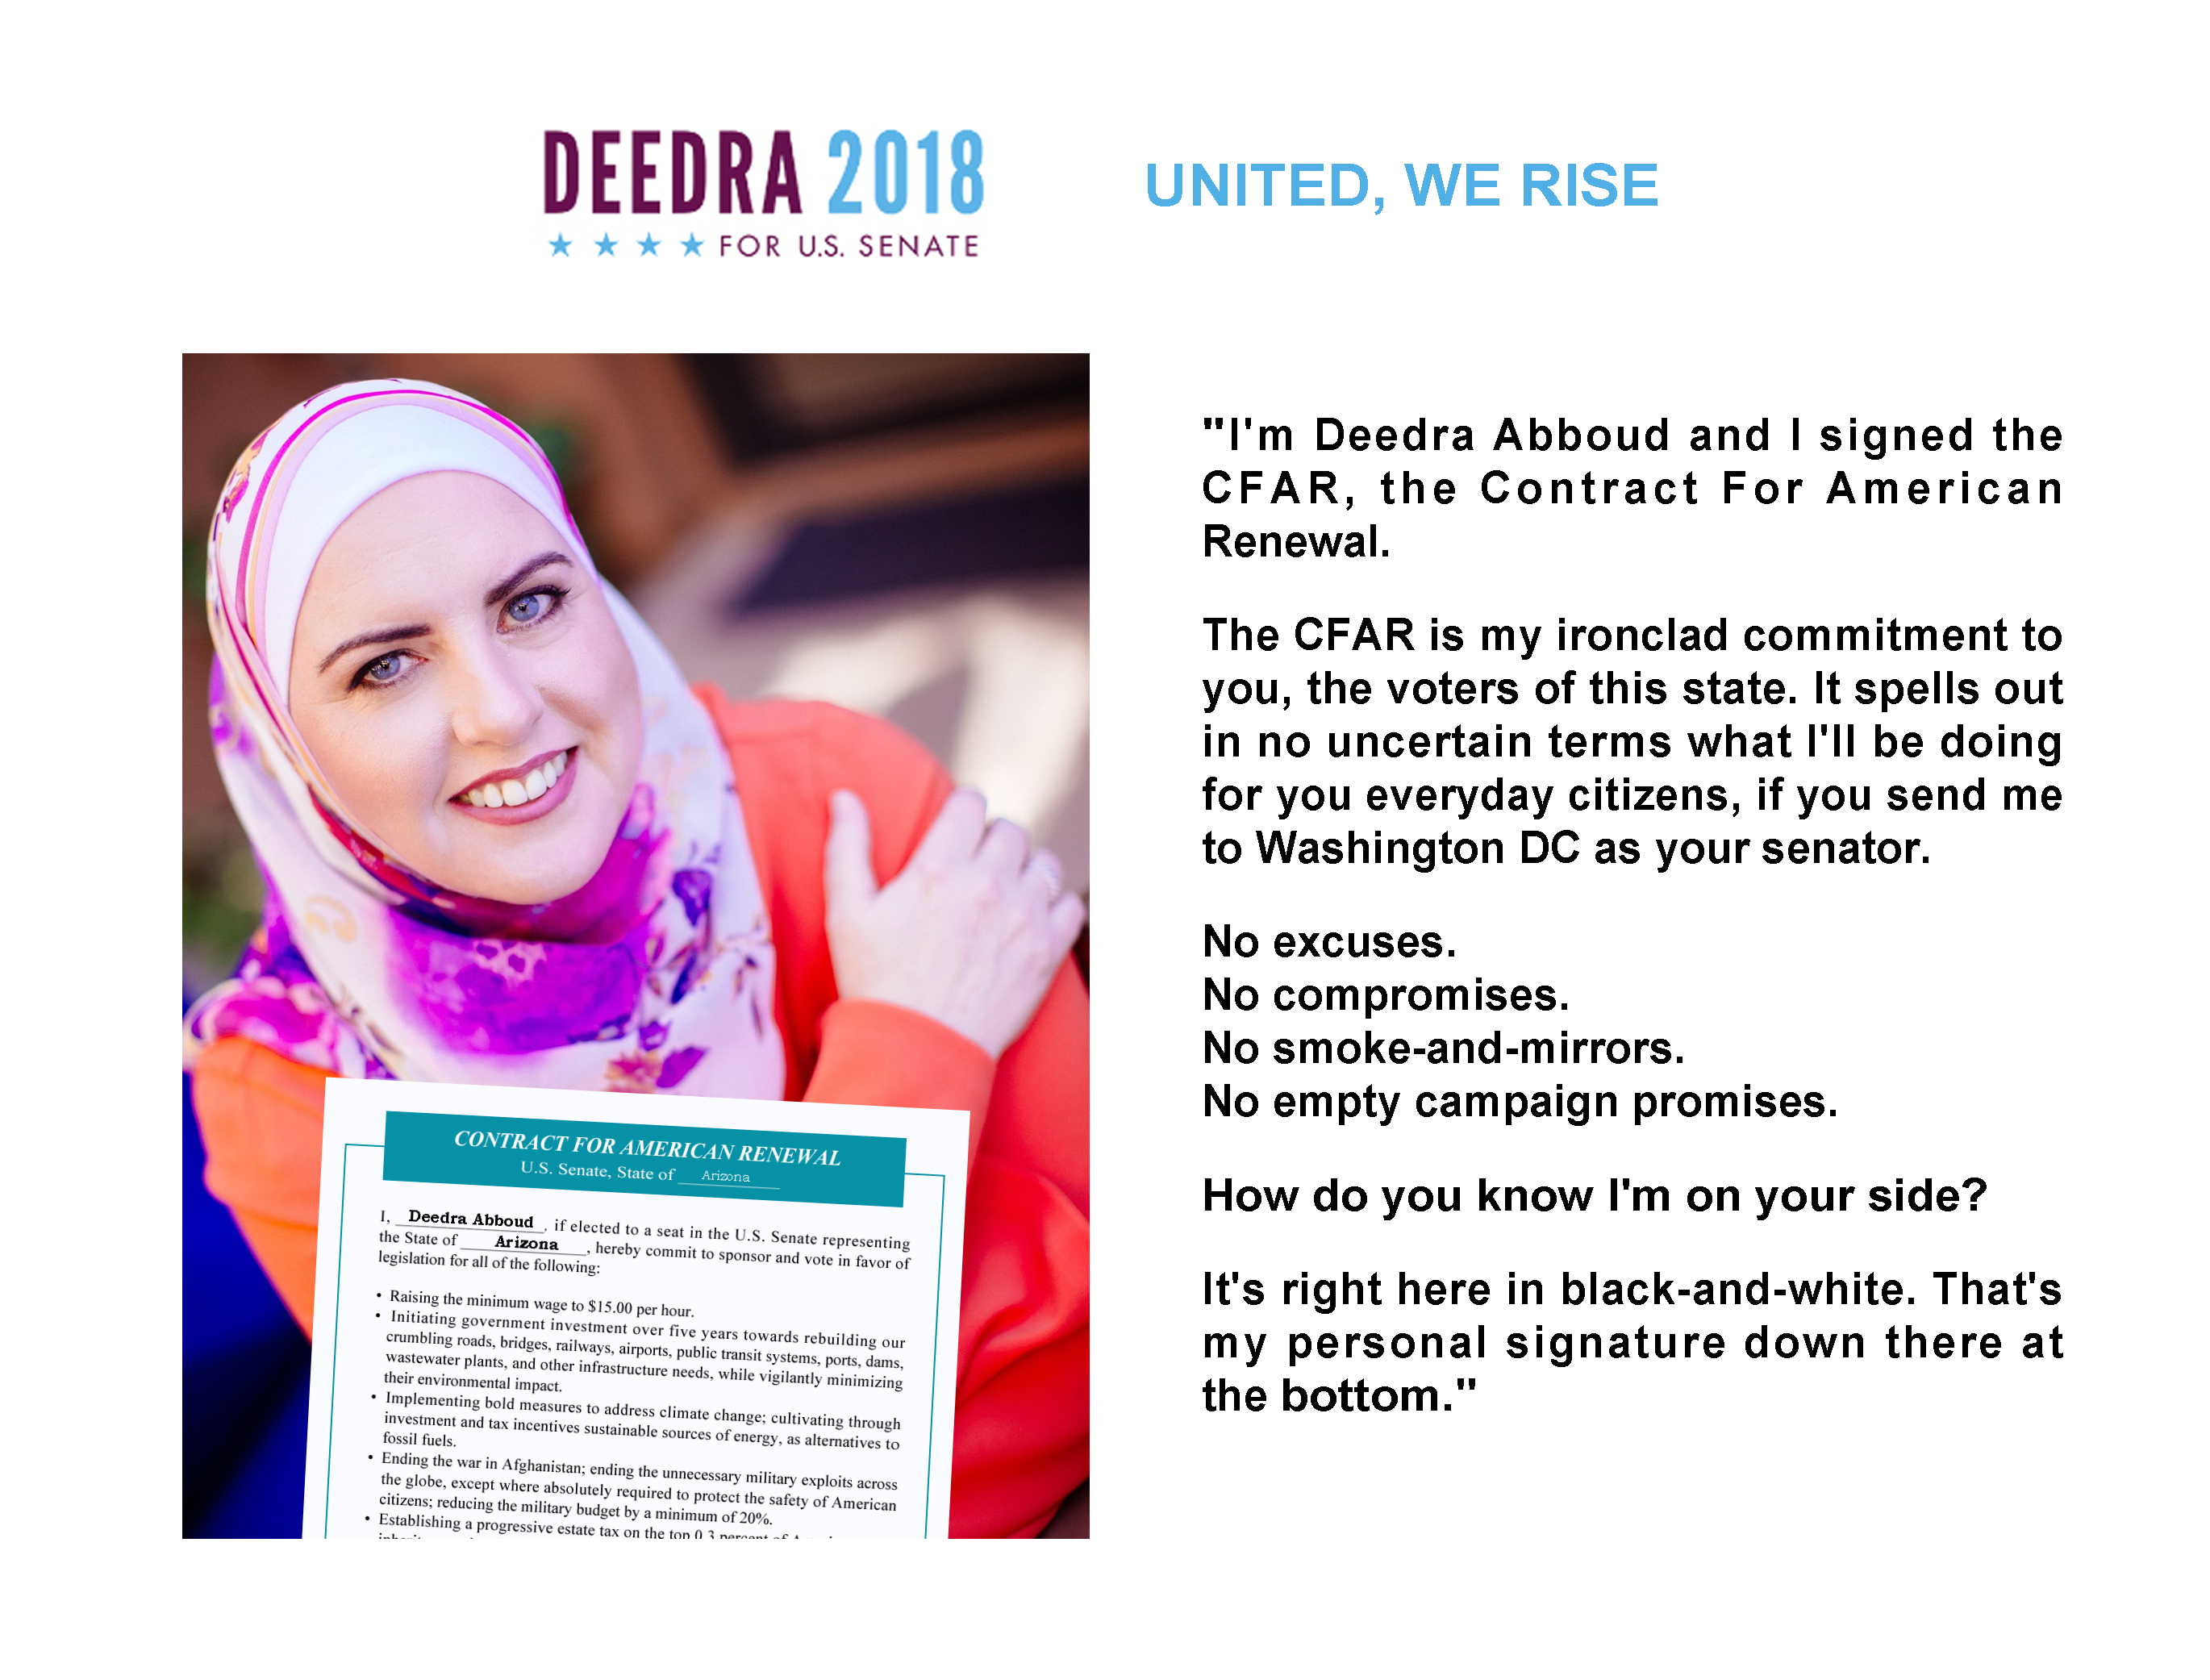 Deedra_Abboud_I_Signed_The_CFAR_.jpg